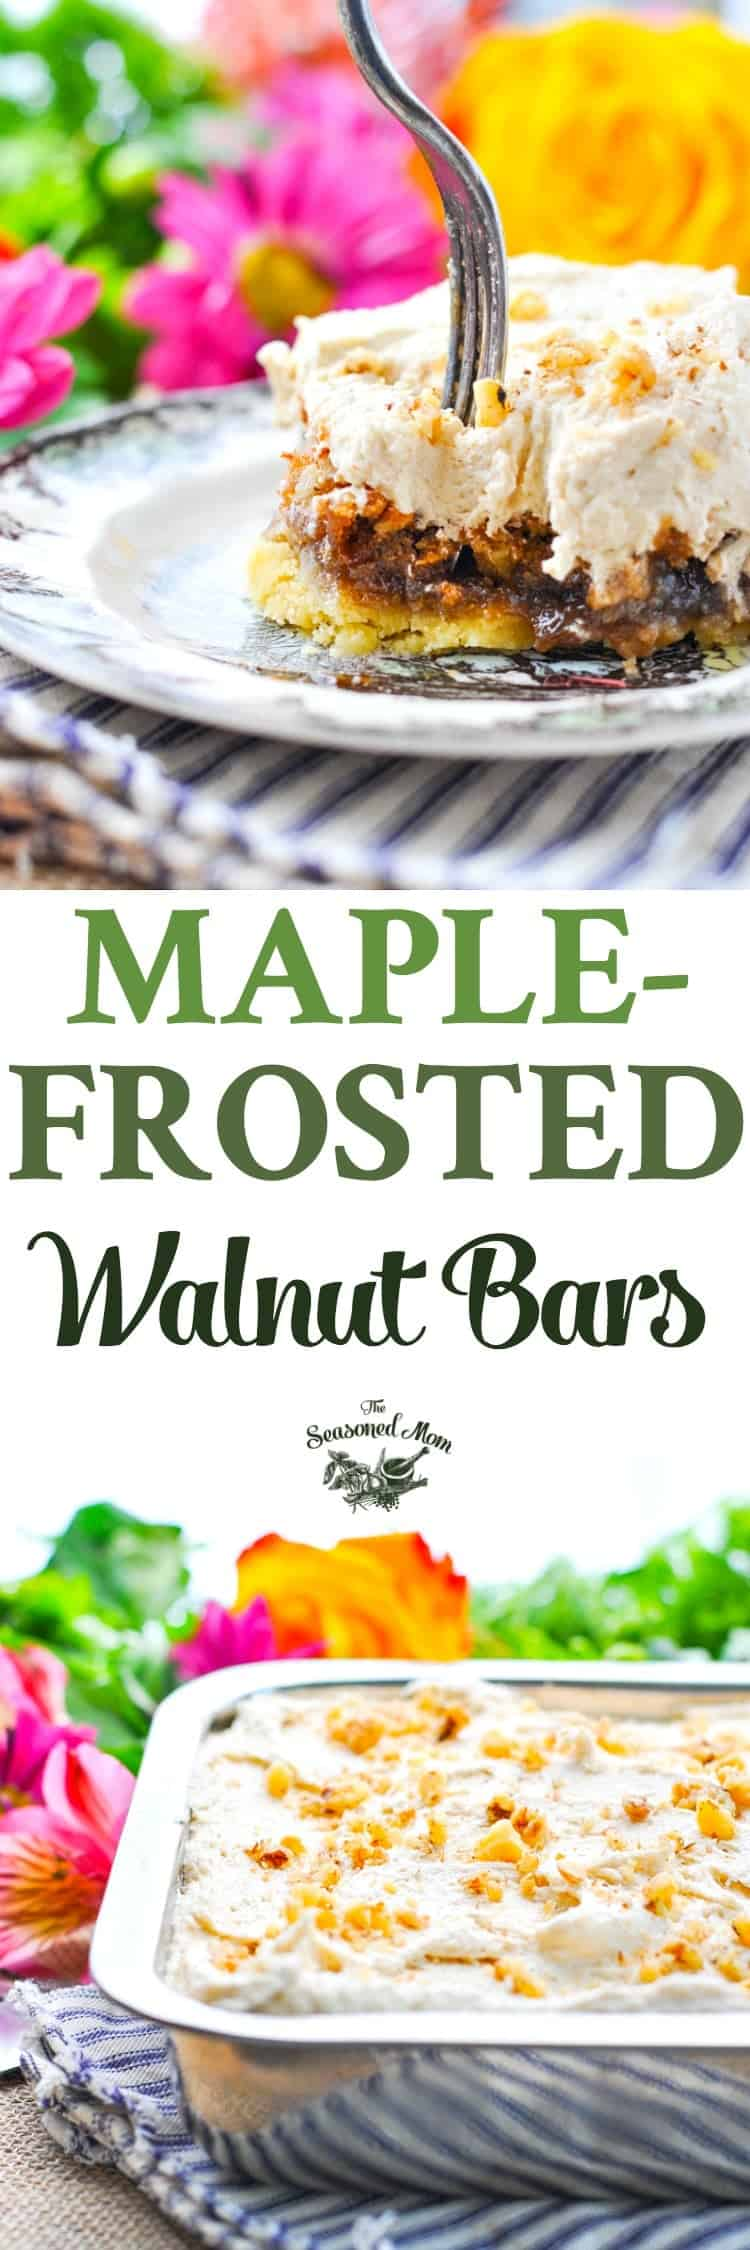 These Maple Frosted Walnut Bars are a delicious and easy dessert recipe! Thanksgiving Dessert | Fall Desserts | Desserts for Parties